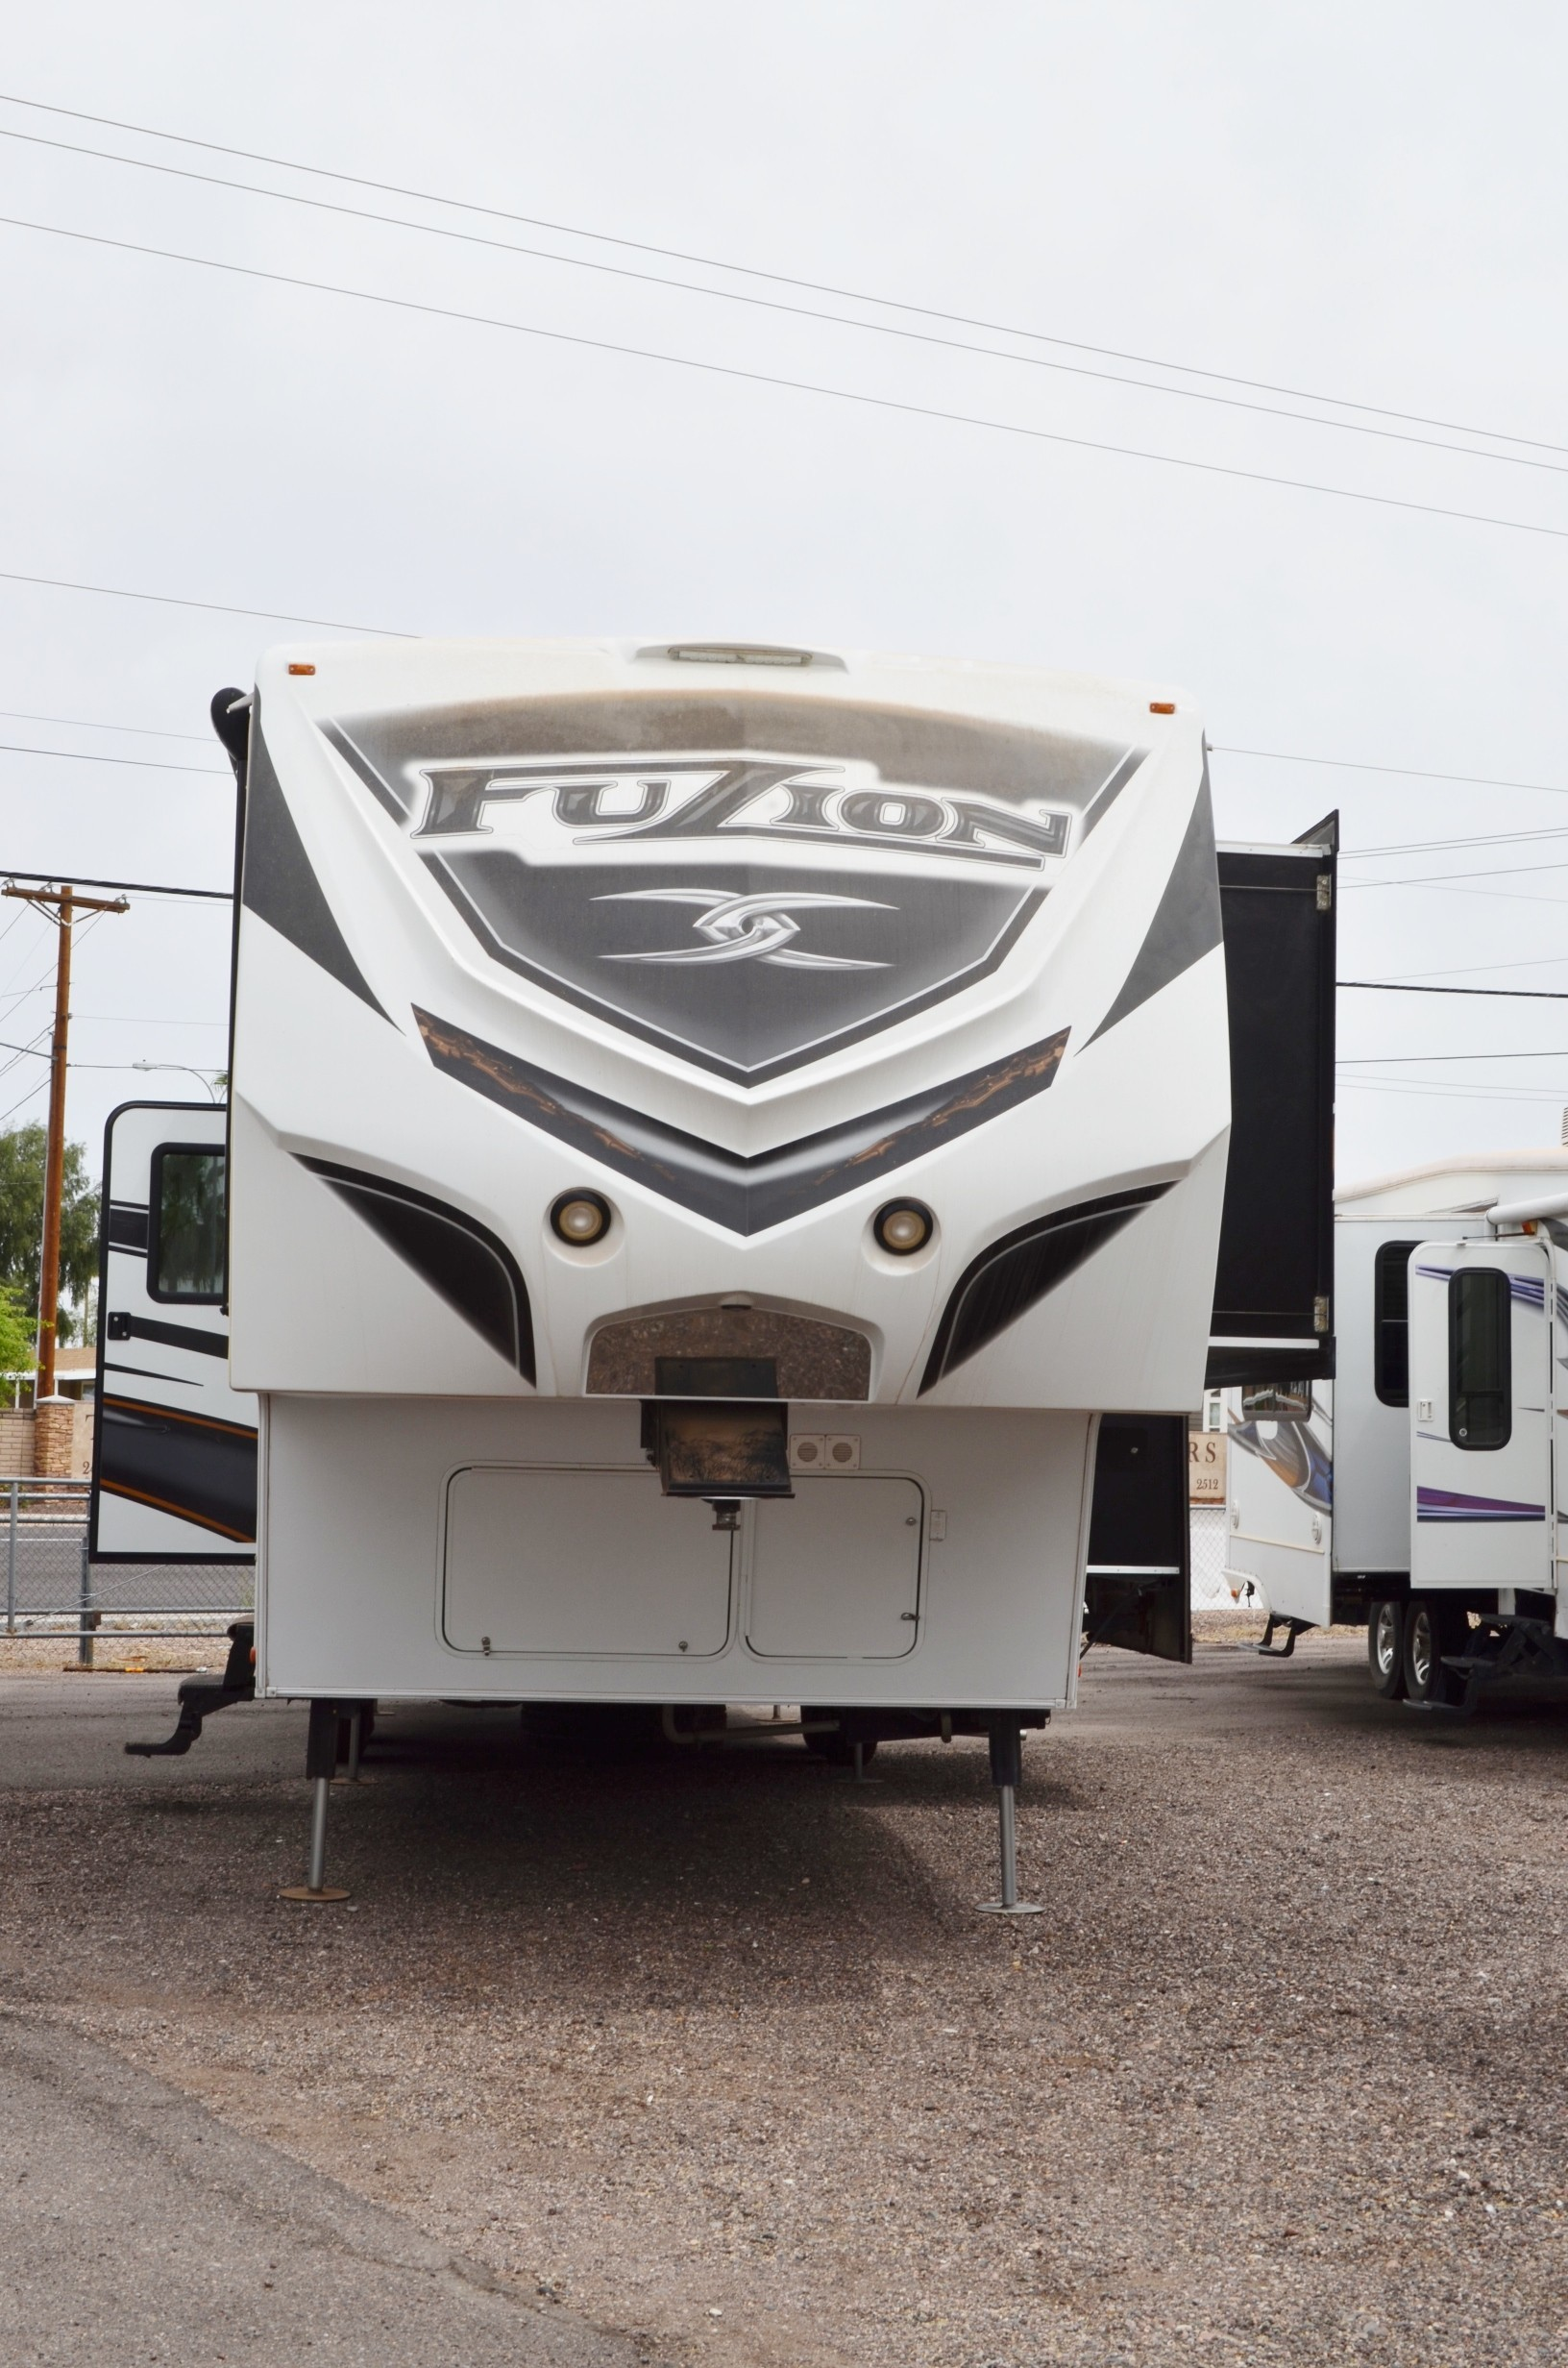 2 Keystone Fuzion 315 Toy Haulers For Sale Home Trailer Hitches Hitch Wiring Curt Adapters Duplex